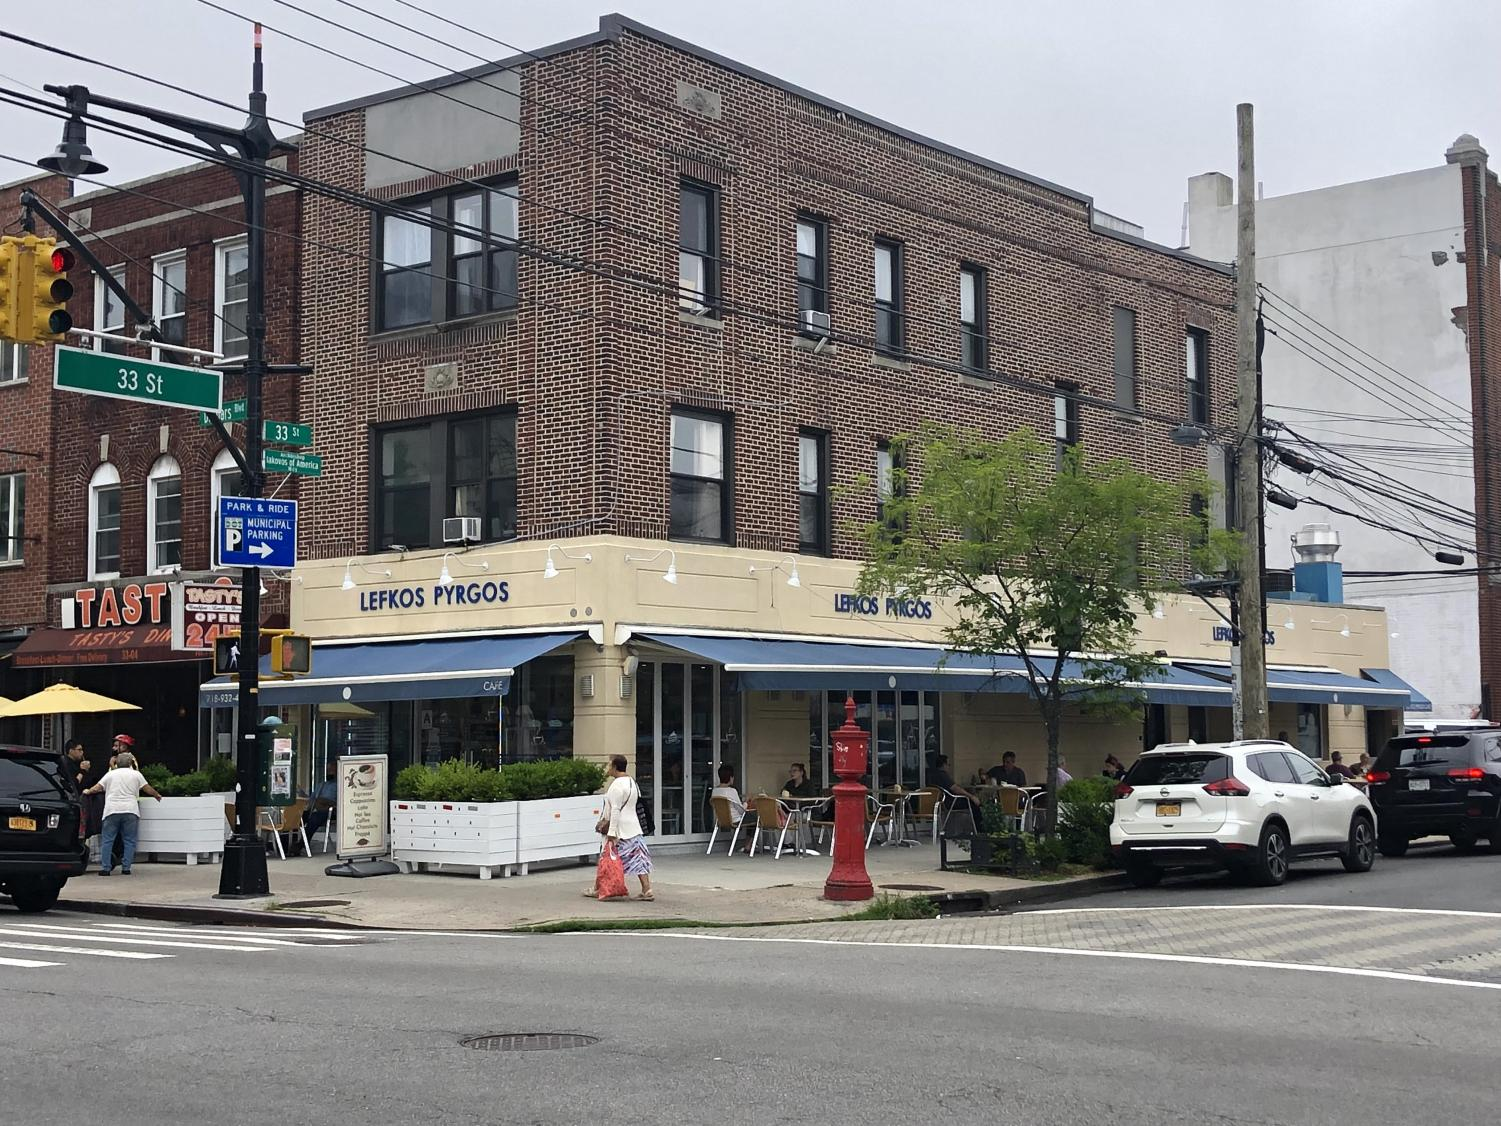 the corner of 33rd st and Ditmars Blvd, Lefkos Pyrogos is a Greek restaurant with outdoor seating